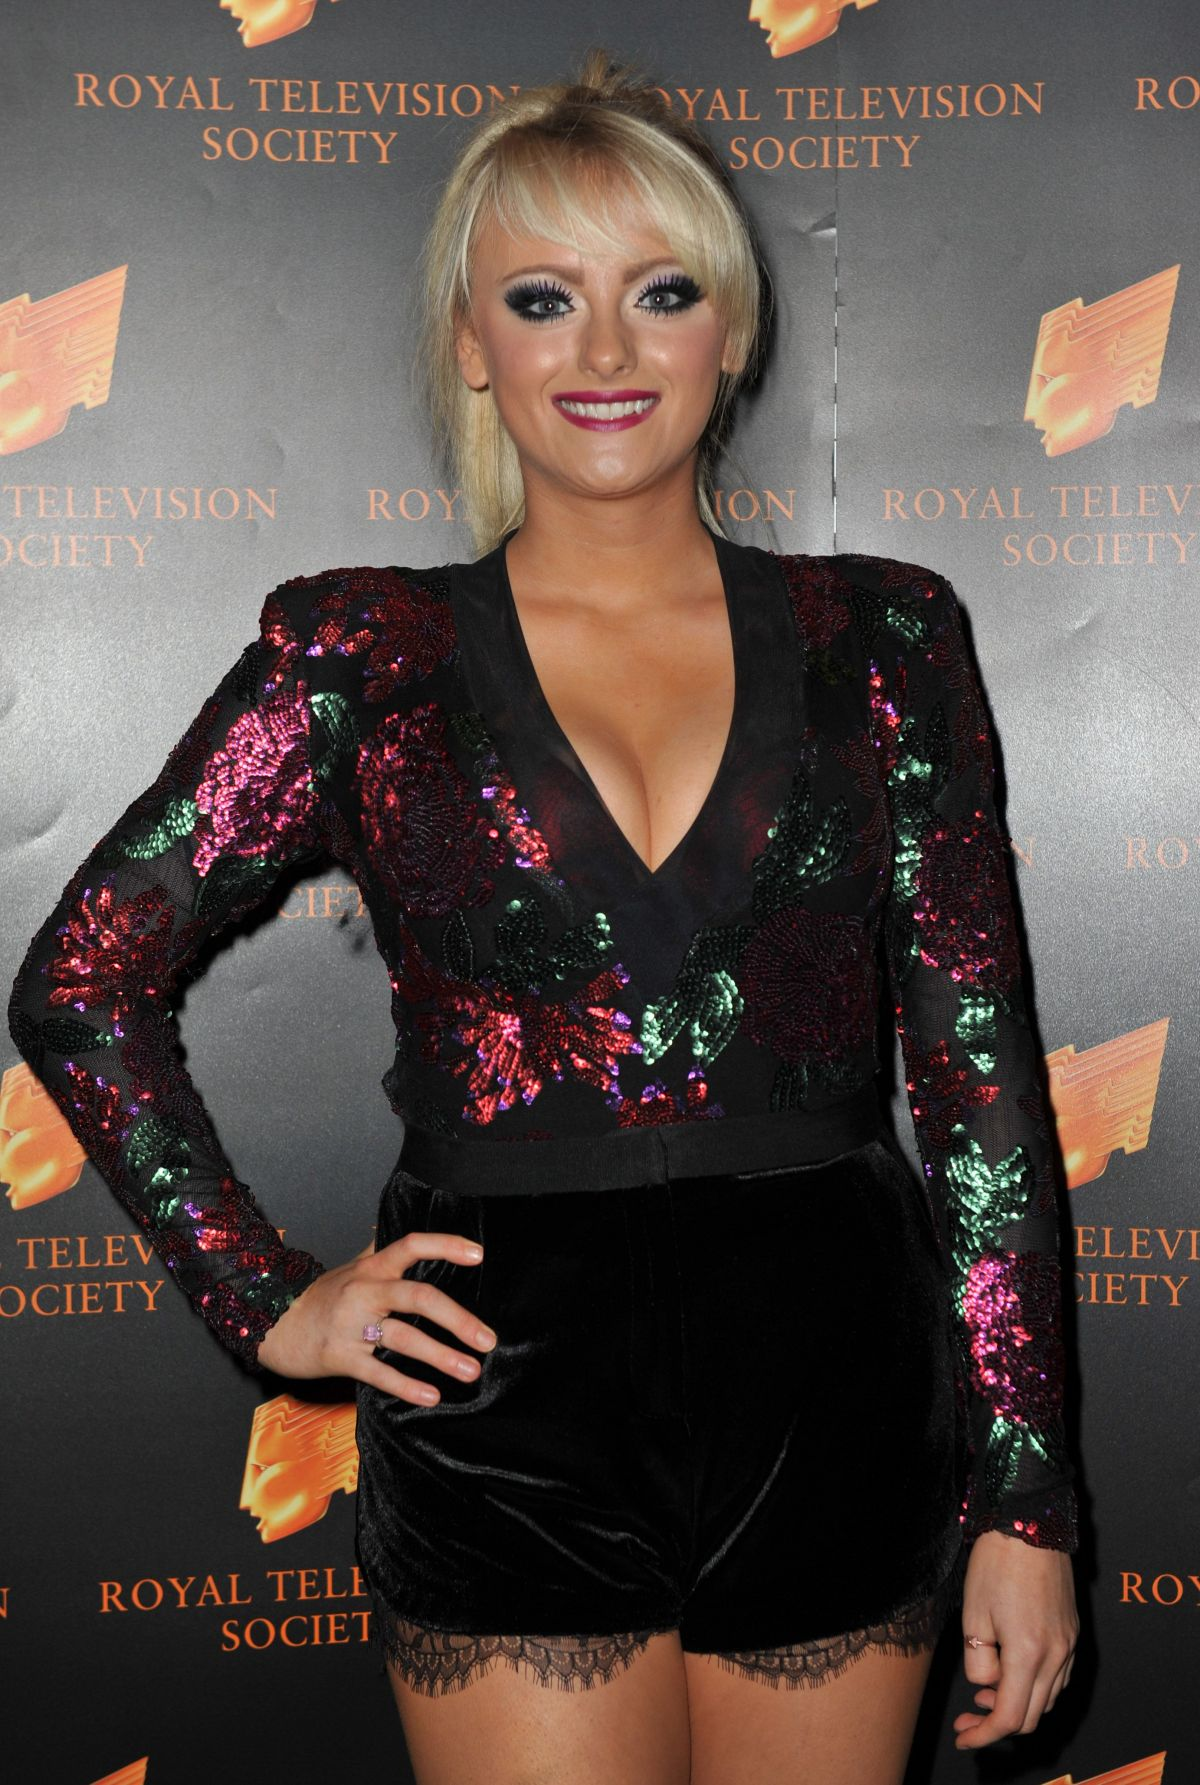 KATIE MCGLYNN at RTS Awards 2015 in Manchester